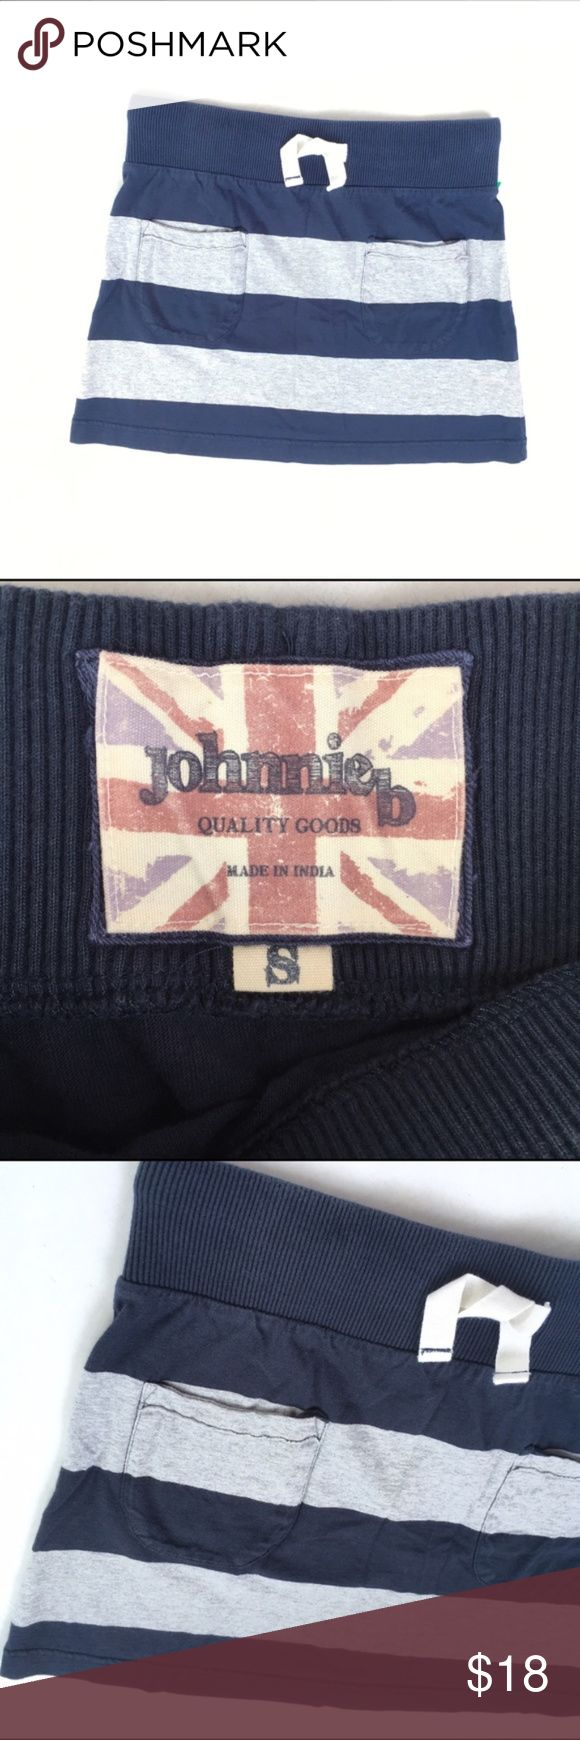 💥Boden Johnnie B Gray & Navy Striped Skirt Boden/Johnnie B Gray & Navy Striped Skirt, small Johnnie B Gray & Navy Striped jersey Knit Skirt, size small. Front pockets. Drawstring waist. In very good pre-owned condition!  🎀I carry all Sizes! Search for your size: 🎀BUNDLE and SAVE! 🎀REASONABLE offers WELCOME Make sure to visit my women's closet @designhive to BUNDLE and SAVE more! Just tag me in each listing you would like to bundle! Boden Bottoms Skirts